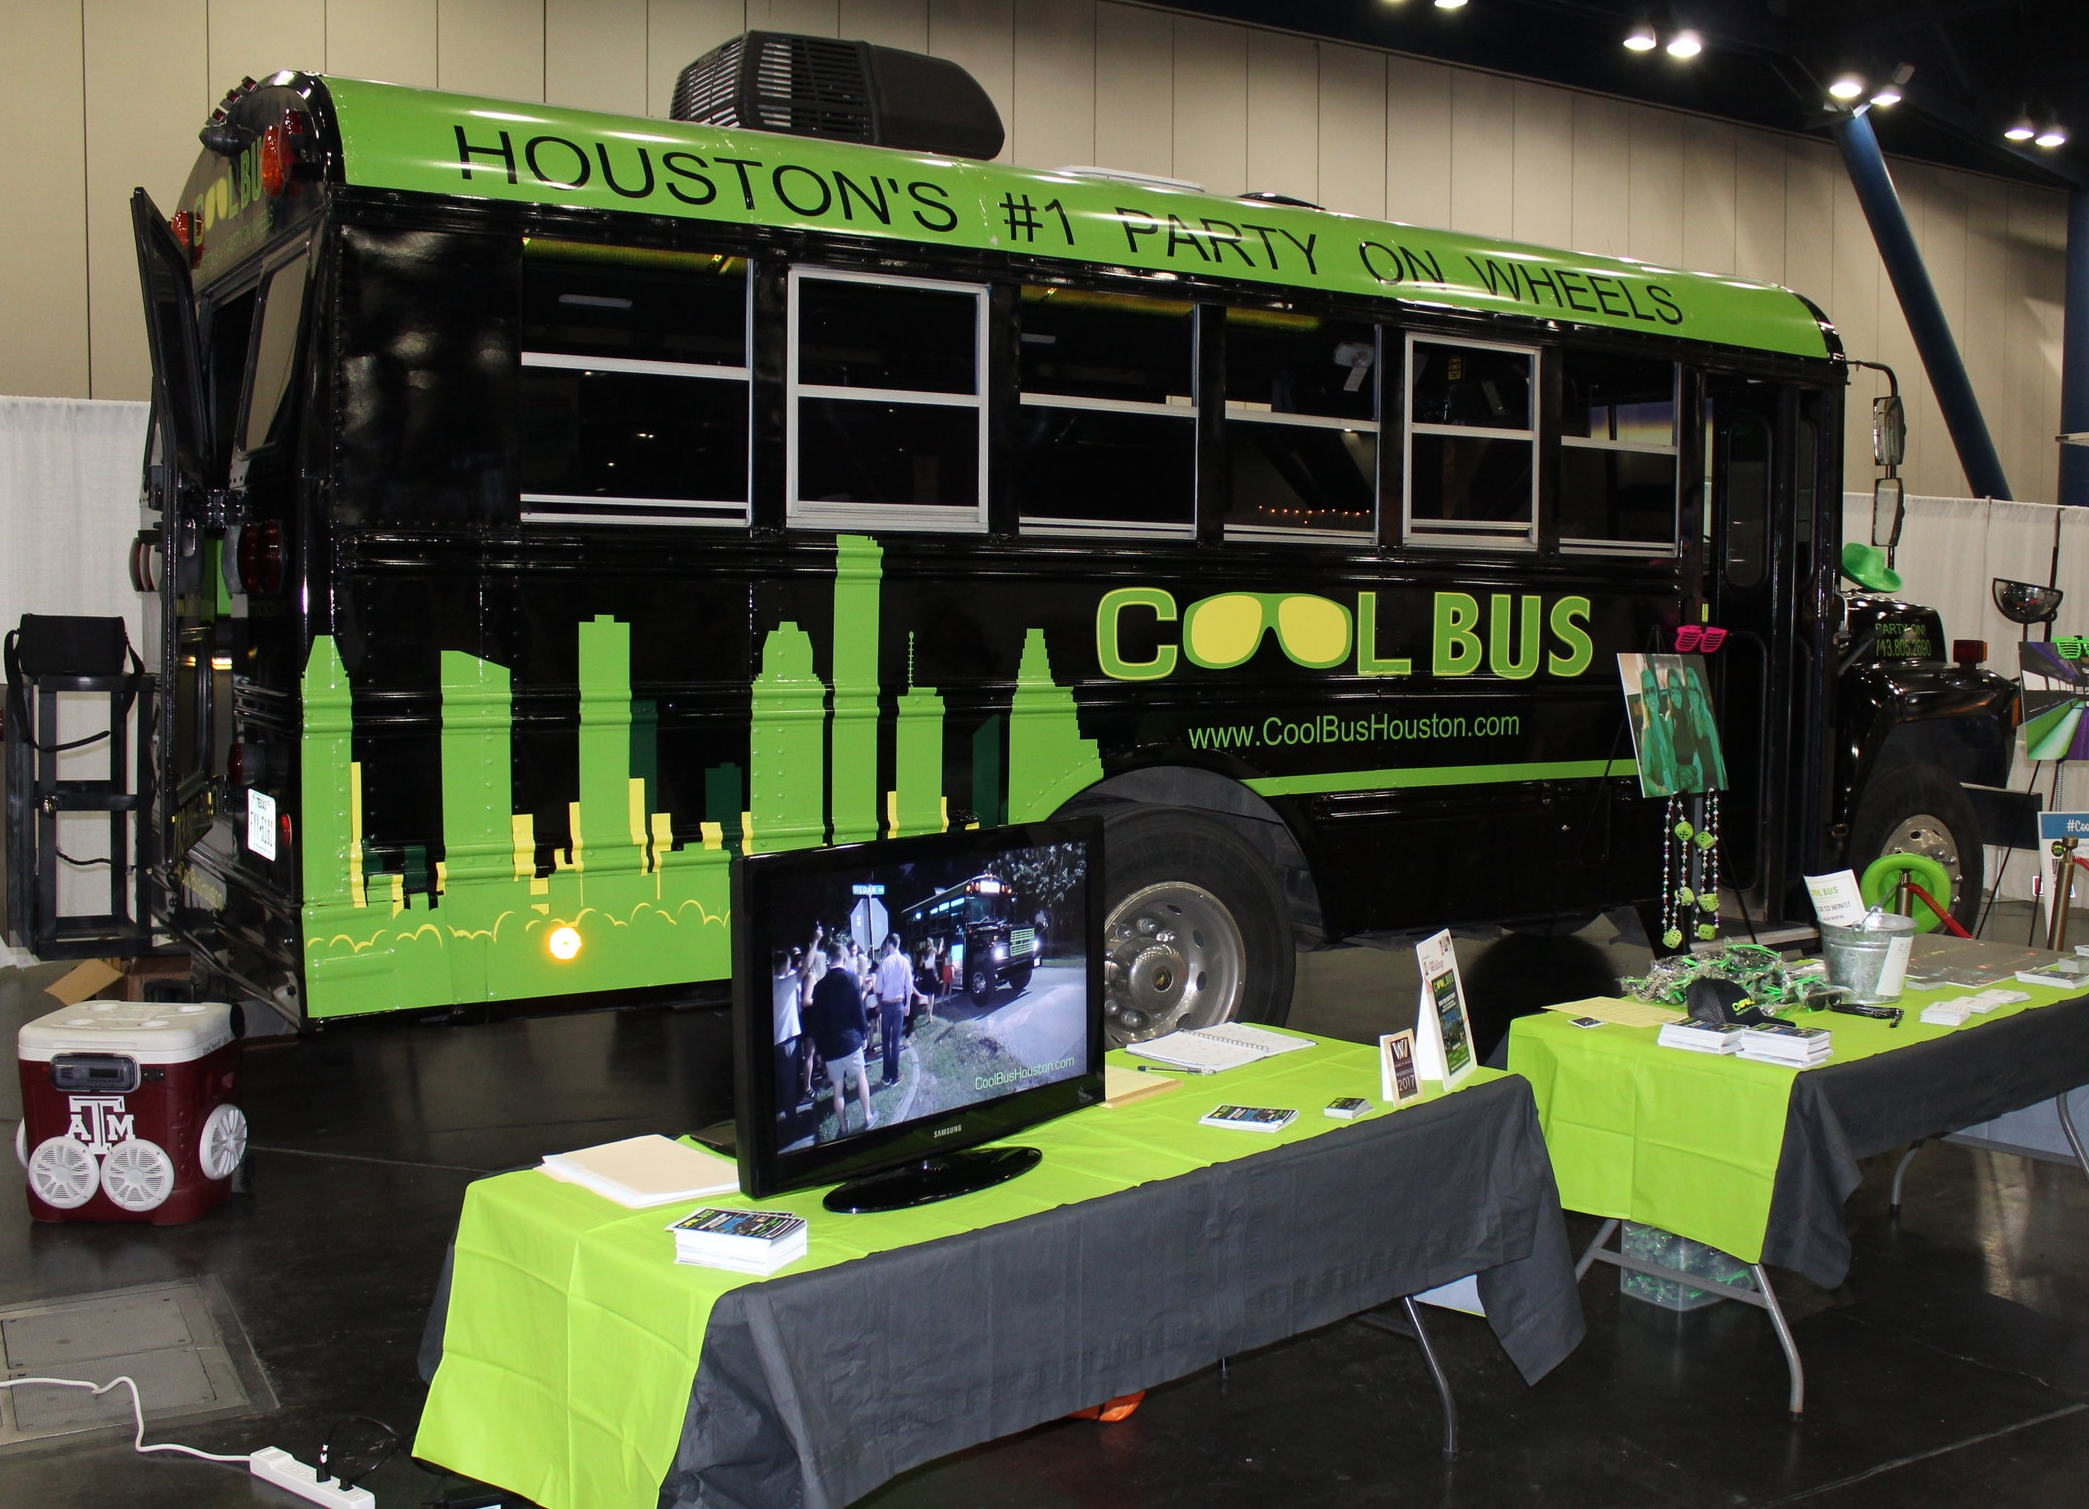 Cool Bus Houston at the Bridal Extravaganza in Houston, TX